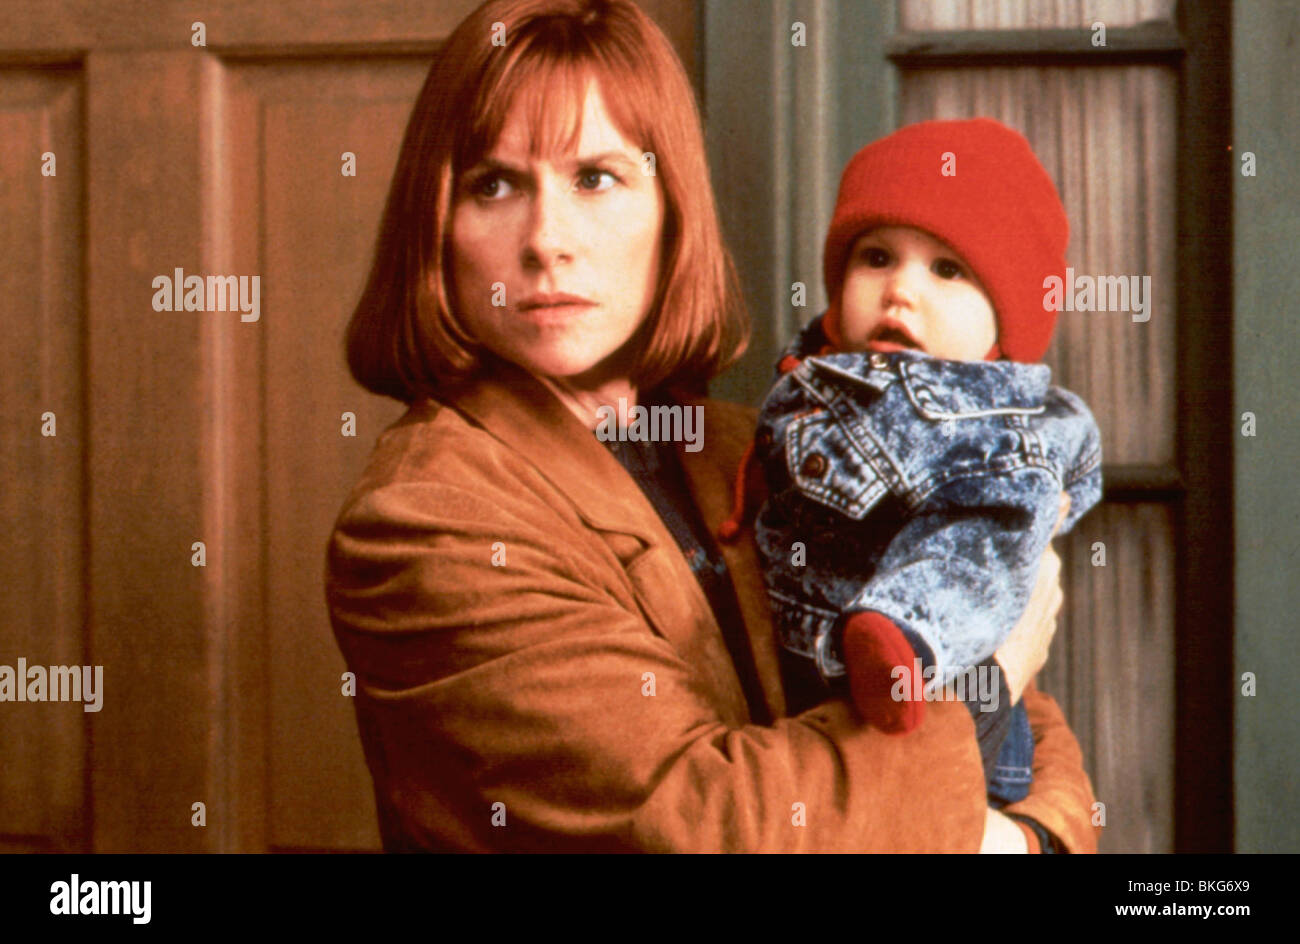 THE DARK HALF (1993) AMY MADIGAN DRKH 022 - Stock Image